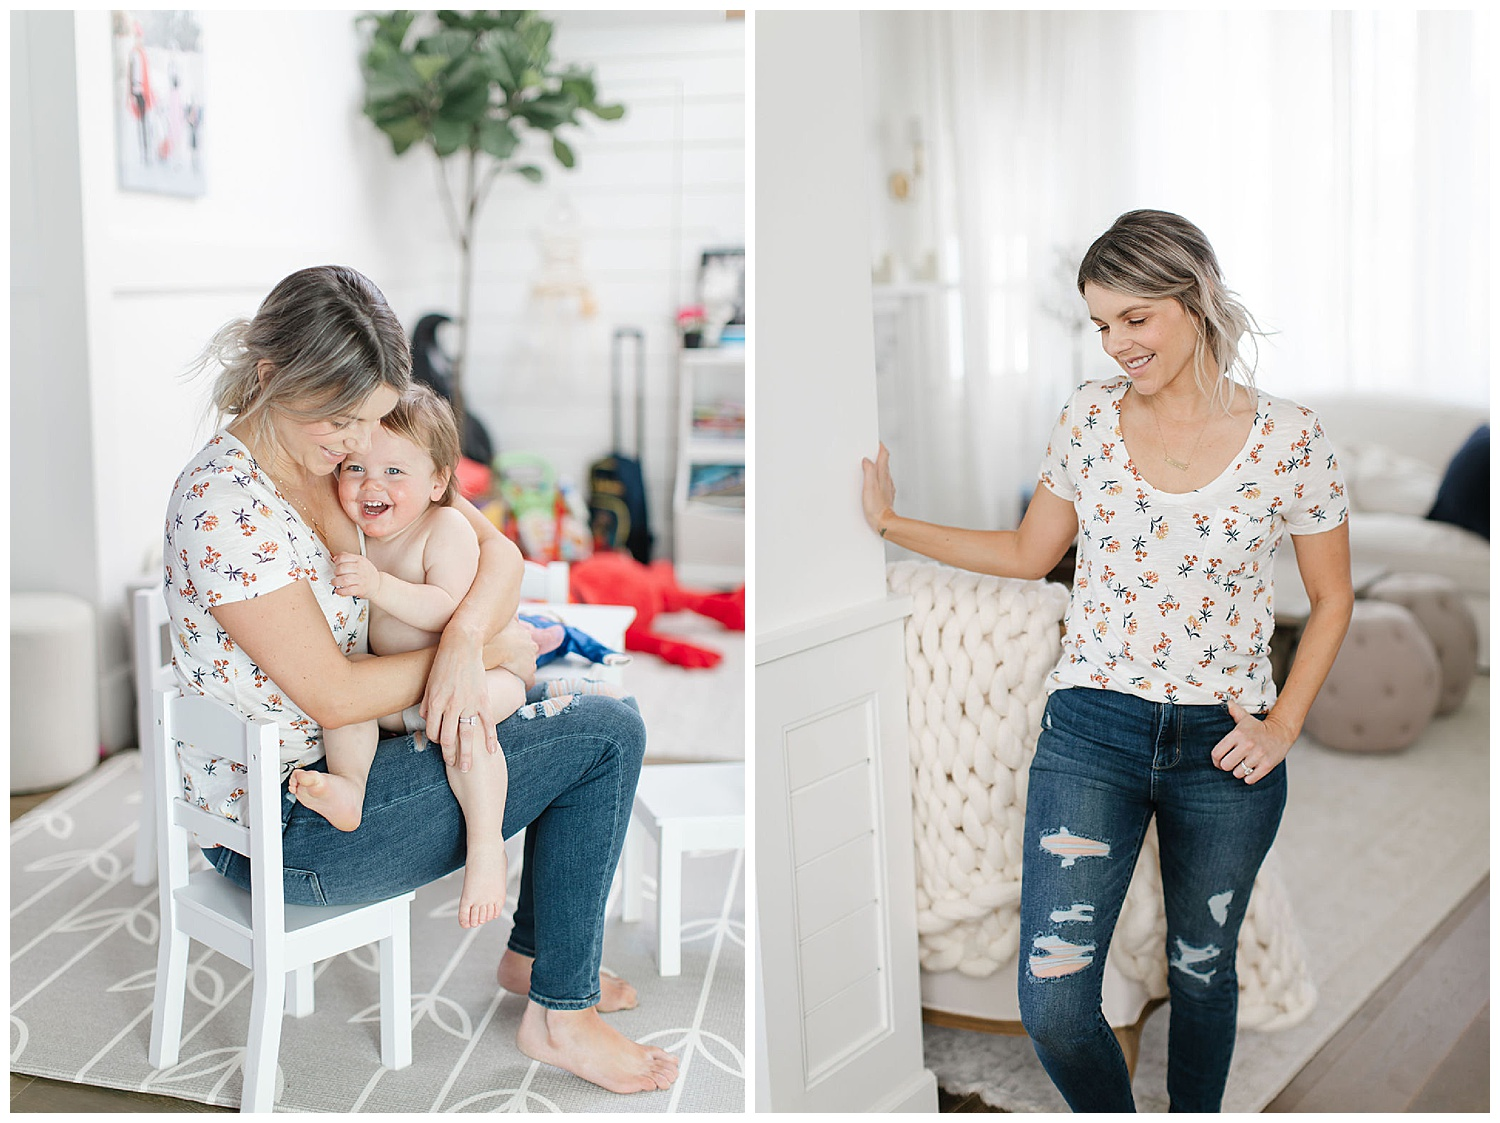 ali_manno_flowertee mom-outfit